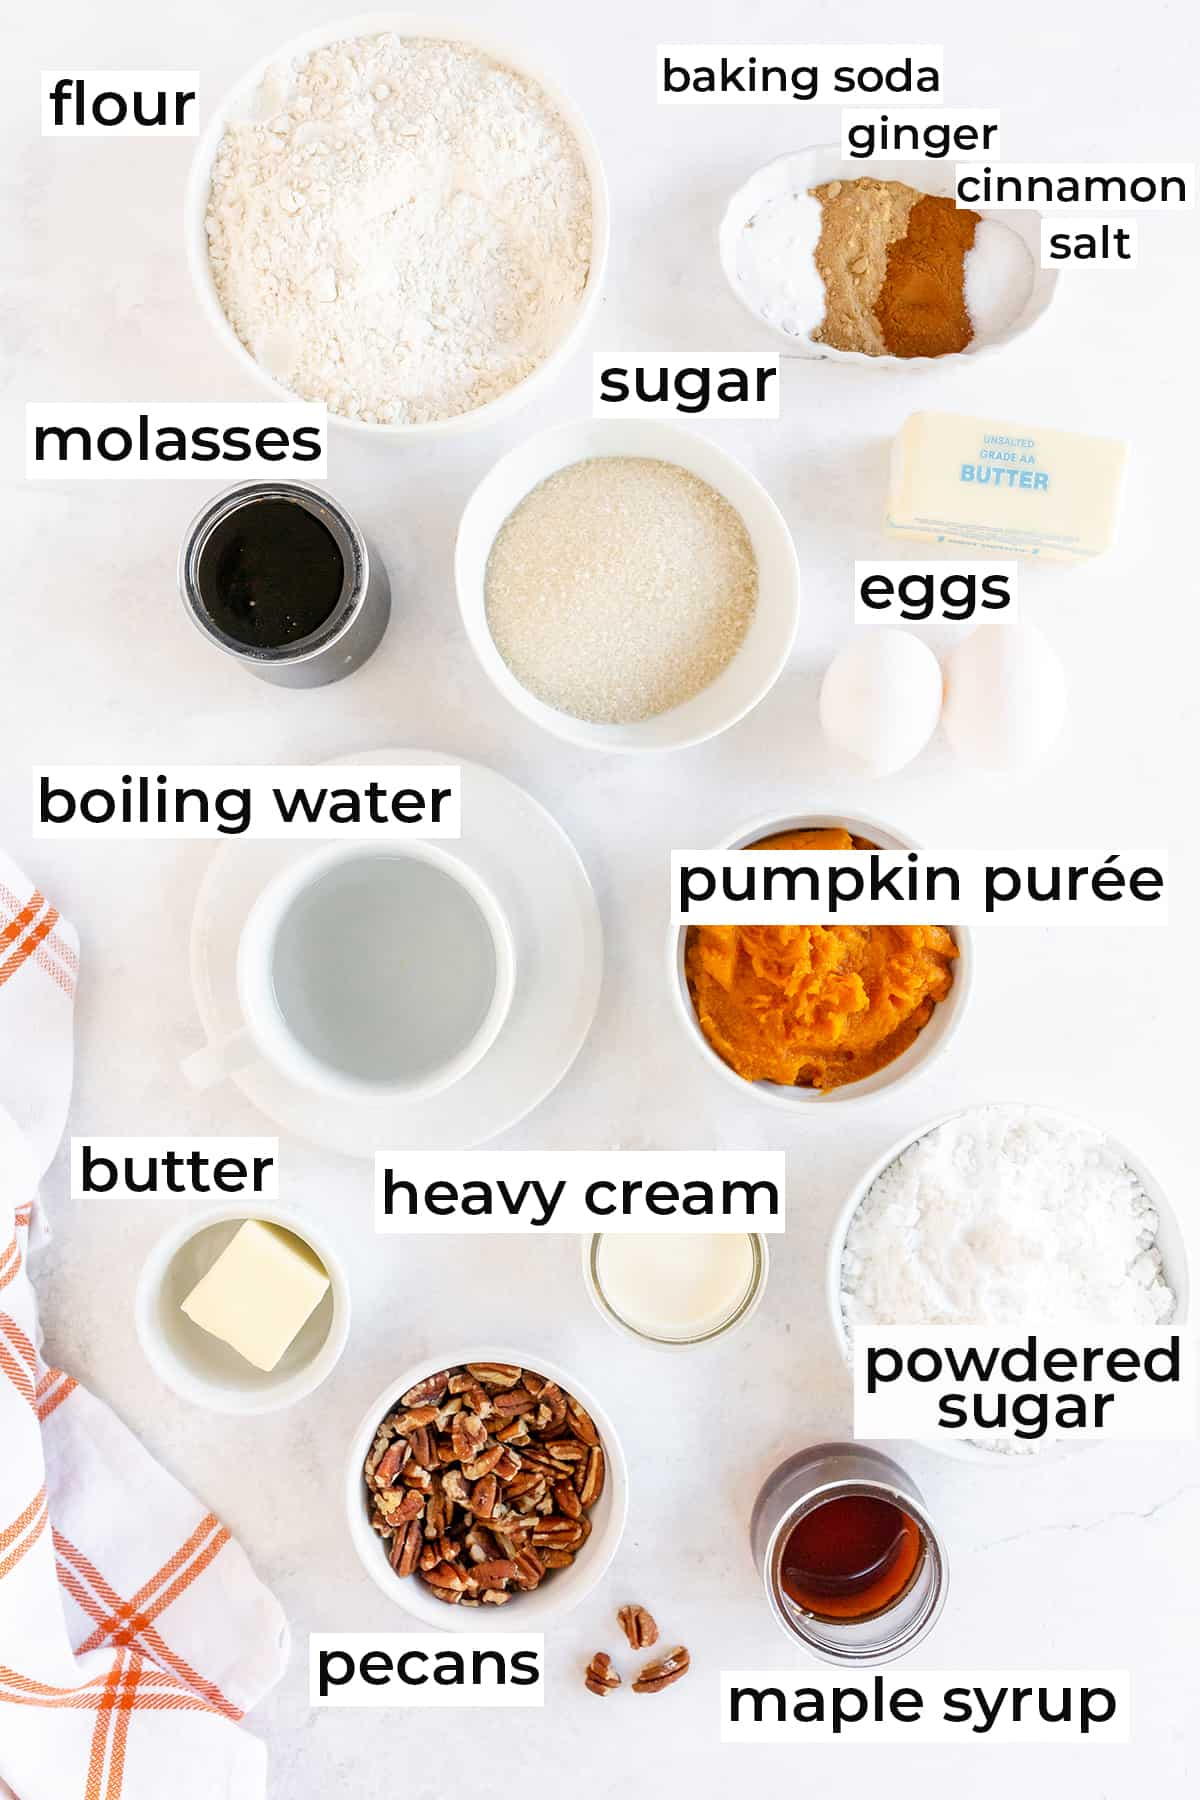 The ingredients needed for Pumpkin Gingerbread with Maple Pecan Icing.